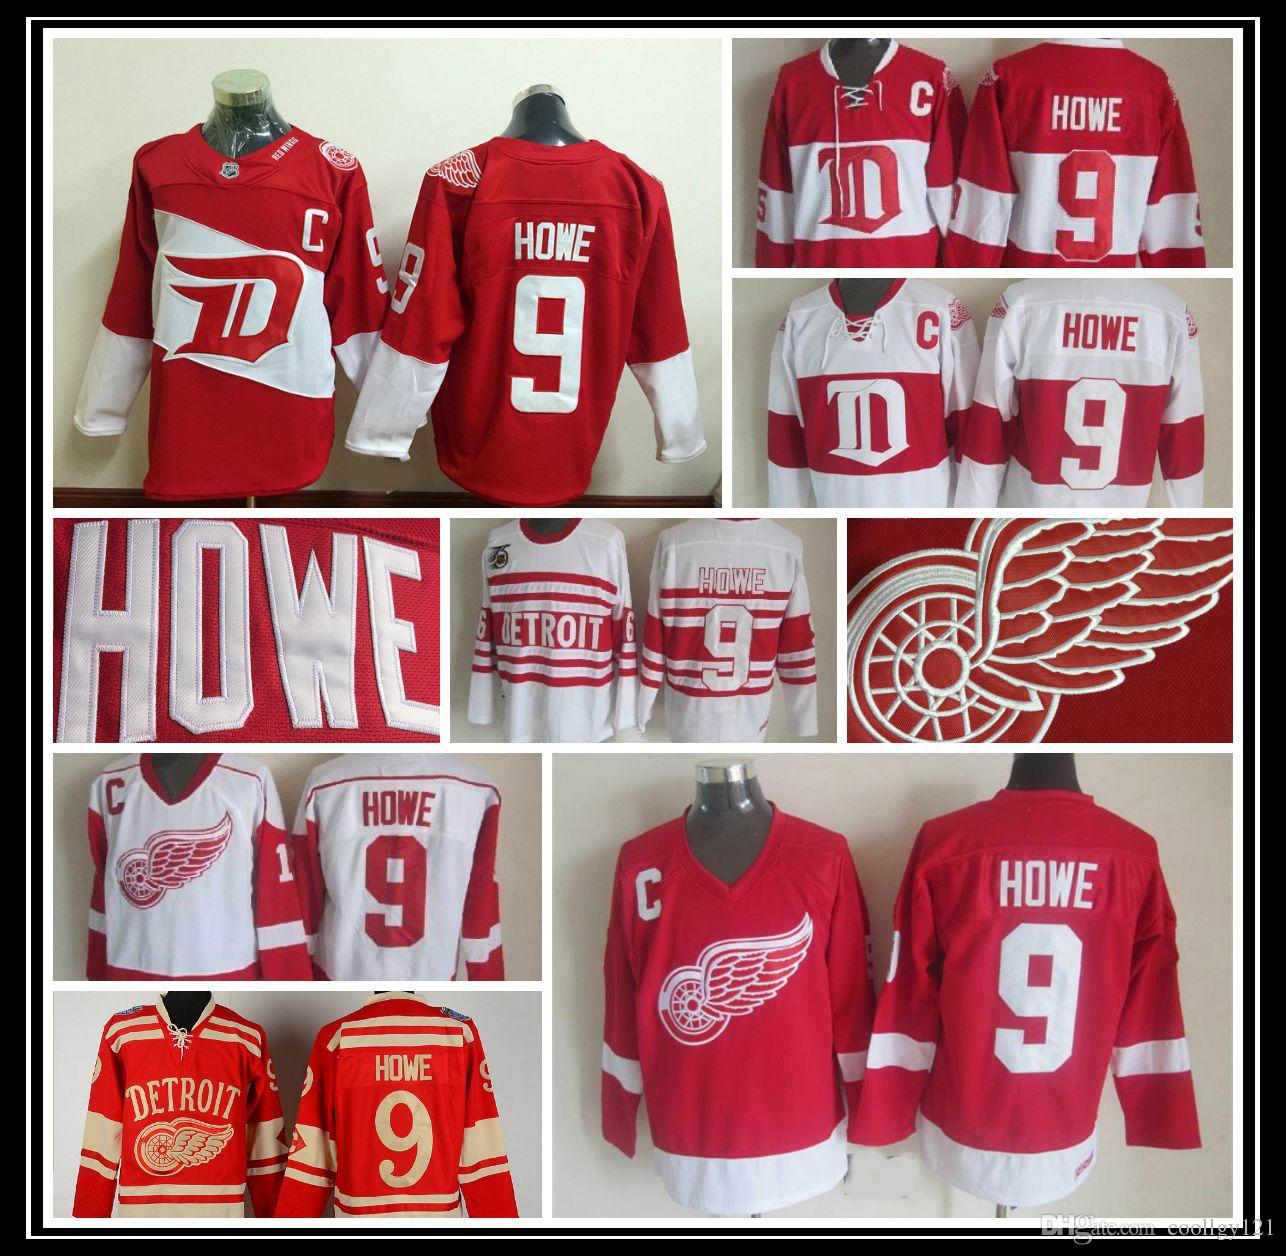 0b423305c8a ... 2018 throwback 9 gordie howe jersey cheap detroit red wings jerseys red  vintage winter classic red